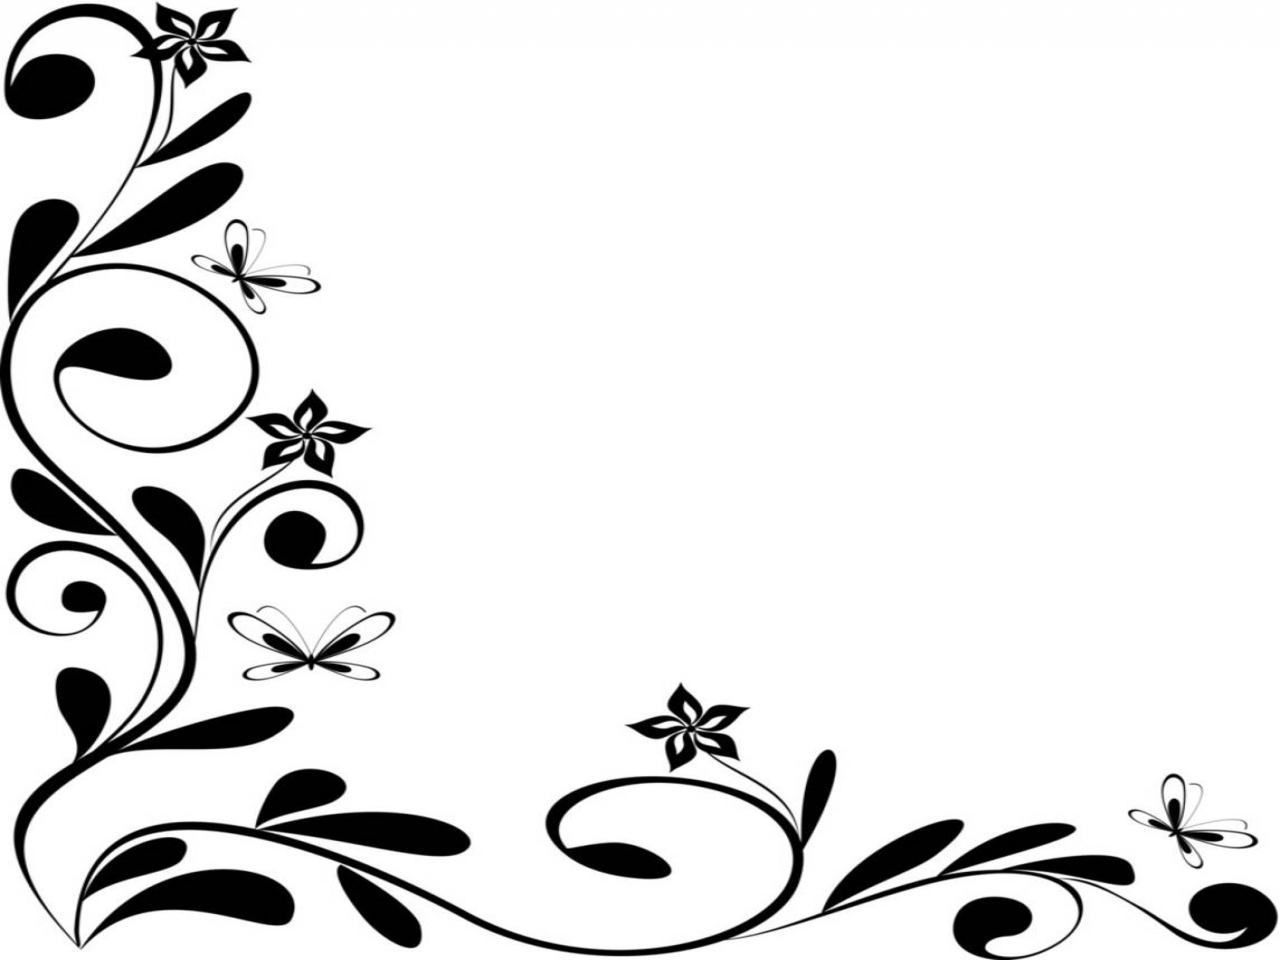 Black free vector download 6946 Free vector for